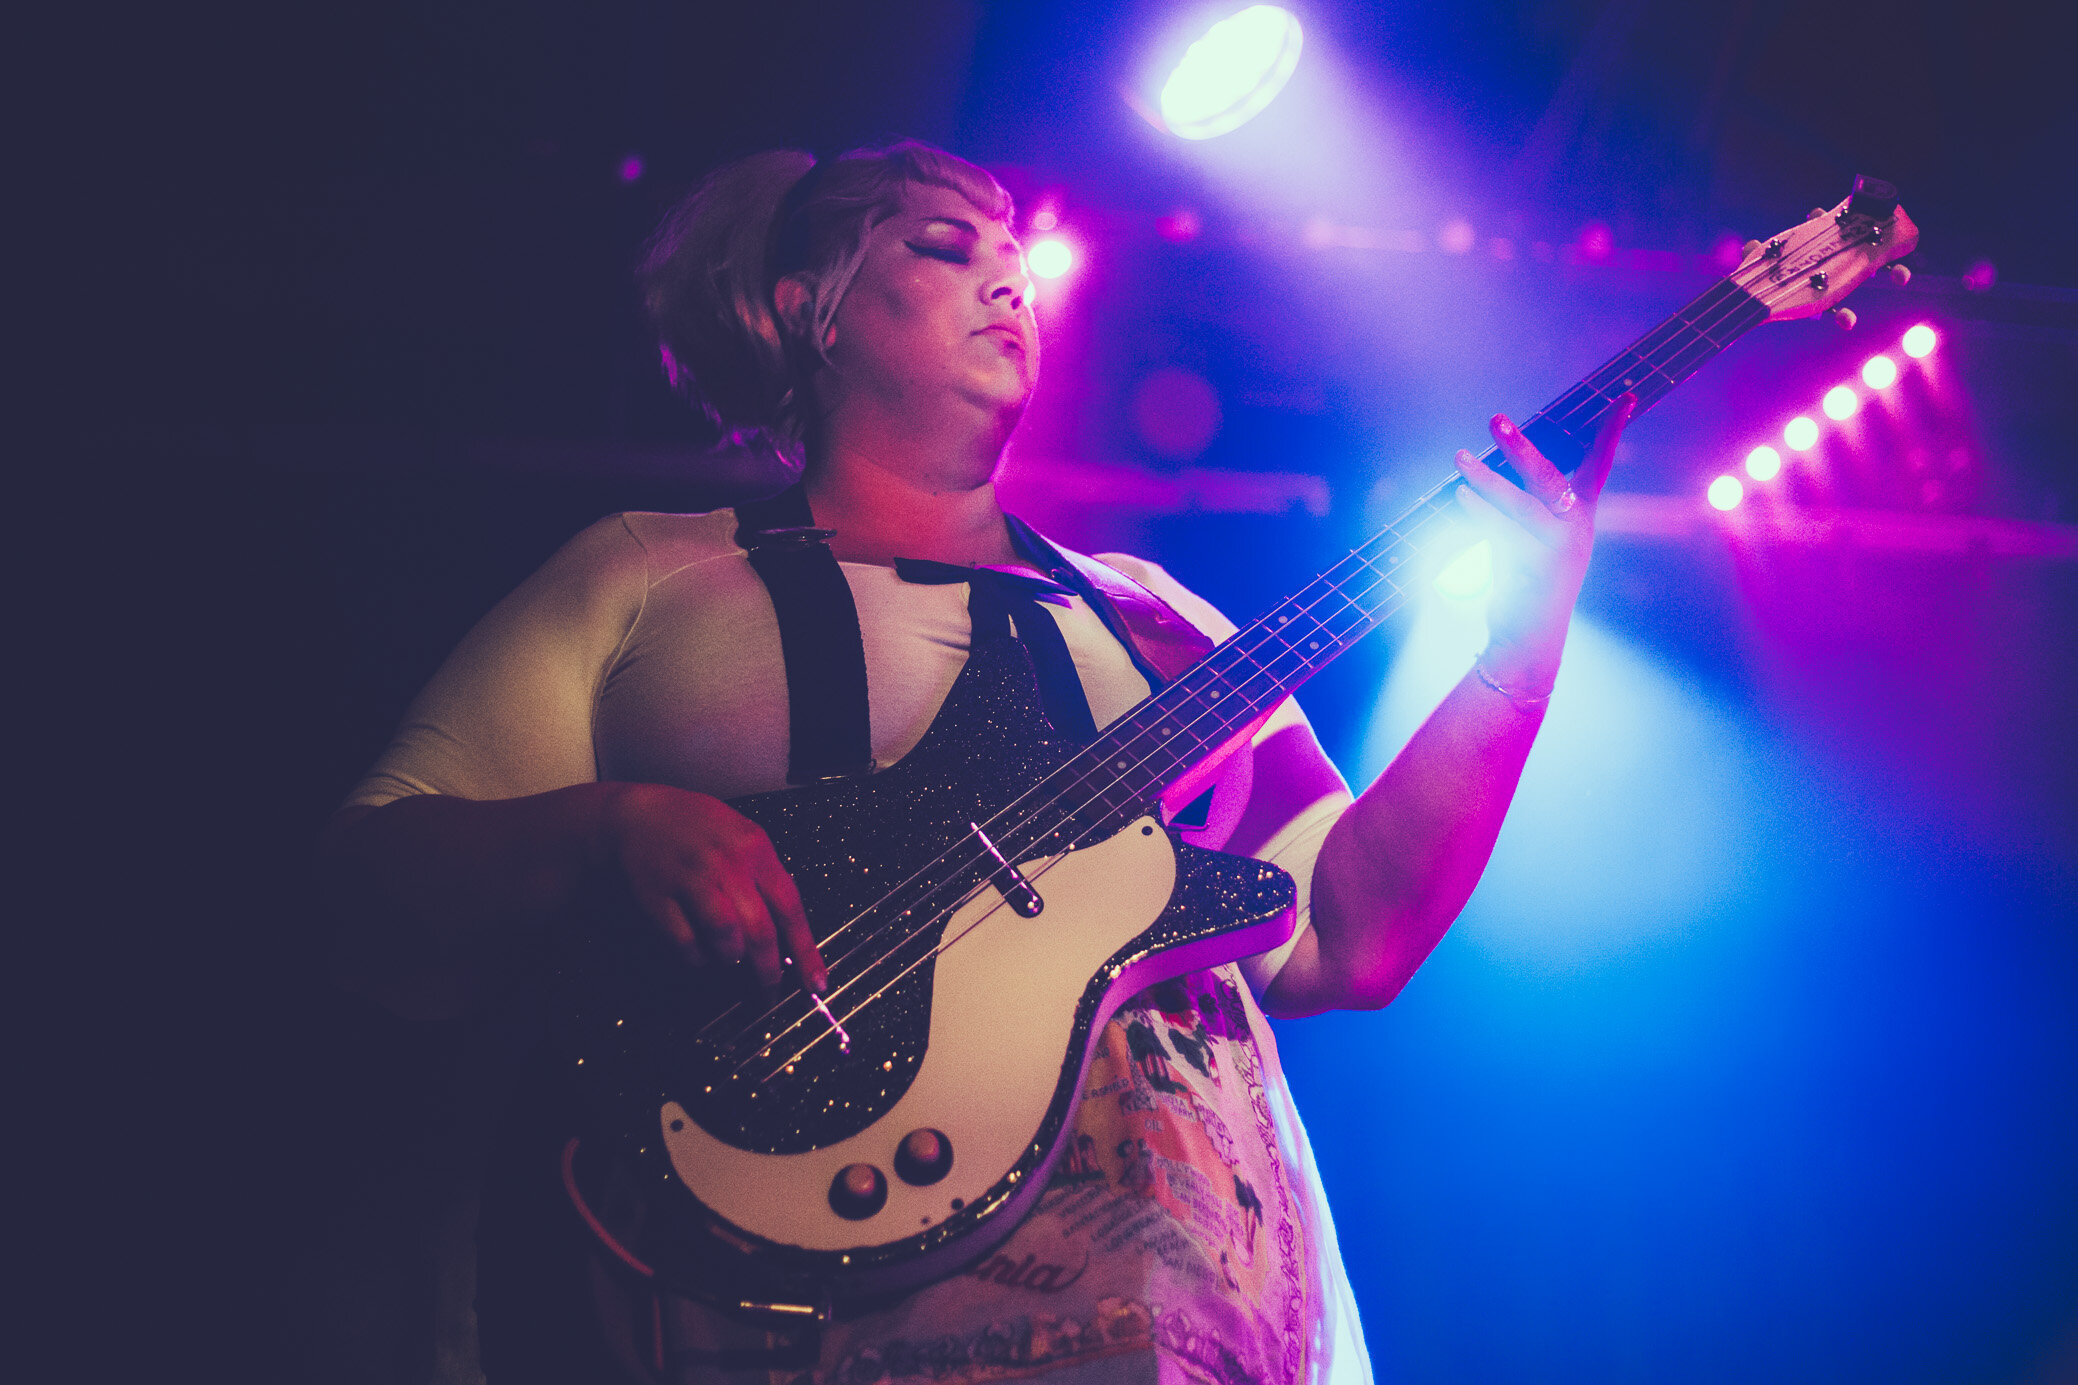 Shannon & the Clams perform at Saturn Birmingham in Birmingham, Alabama on October 12th, 2019. (Photo by David A. Smith / DSmithScenes)